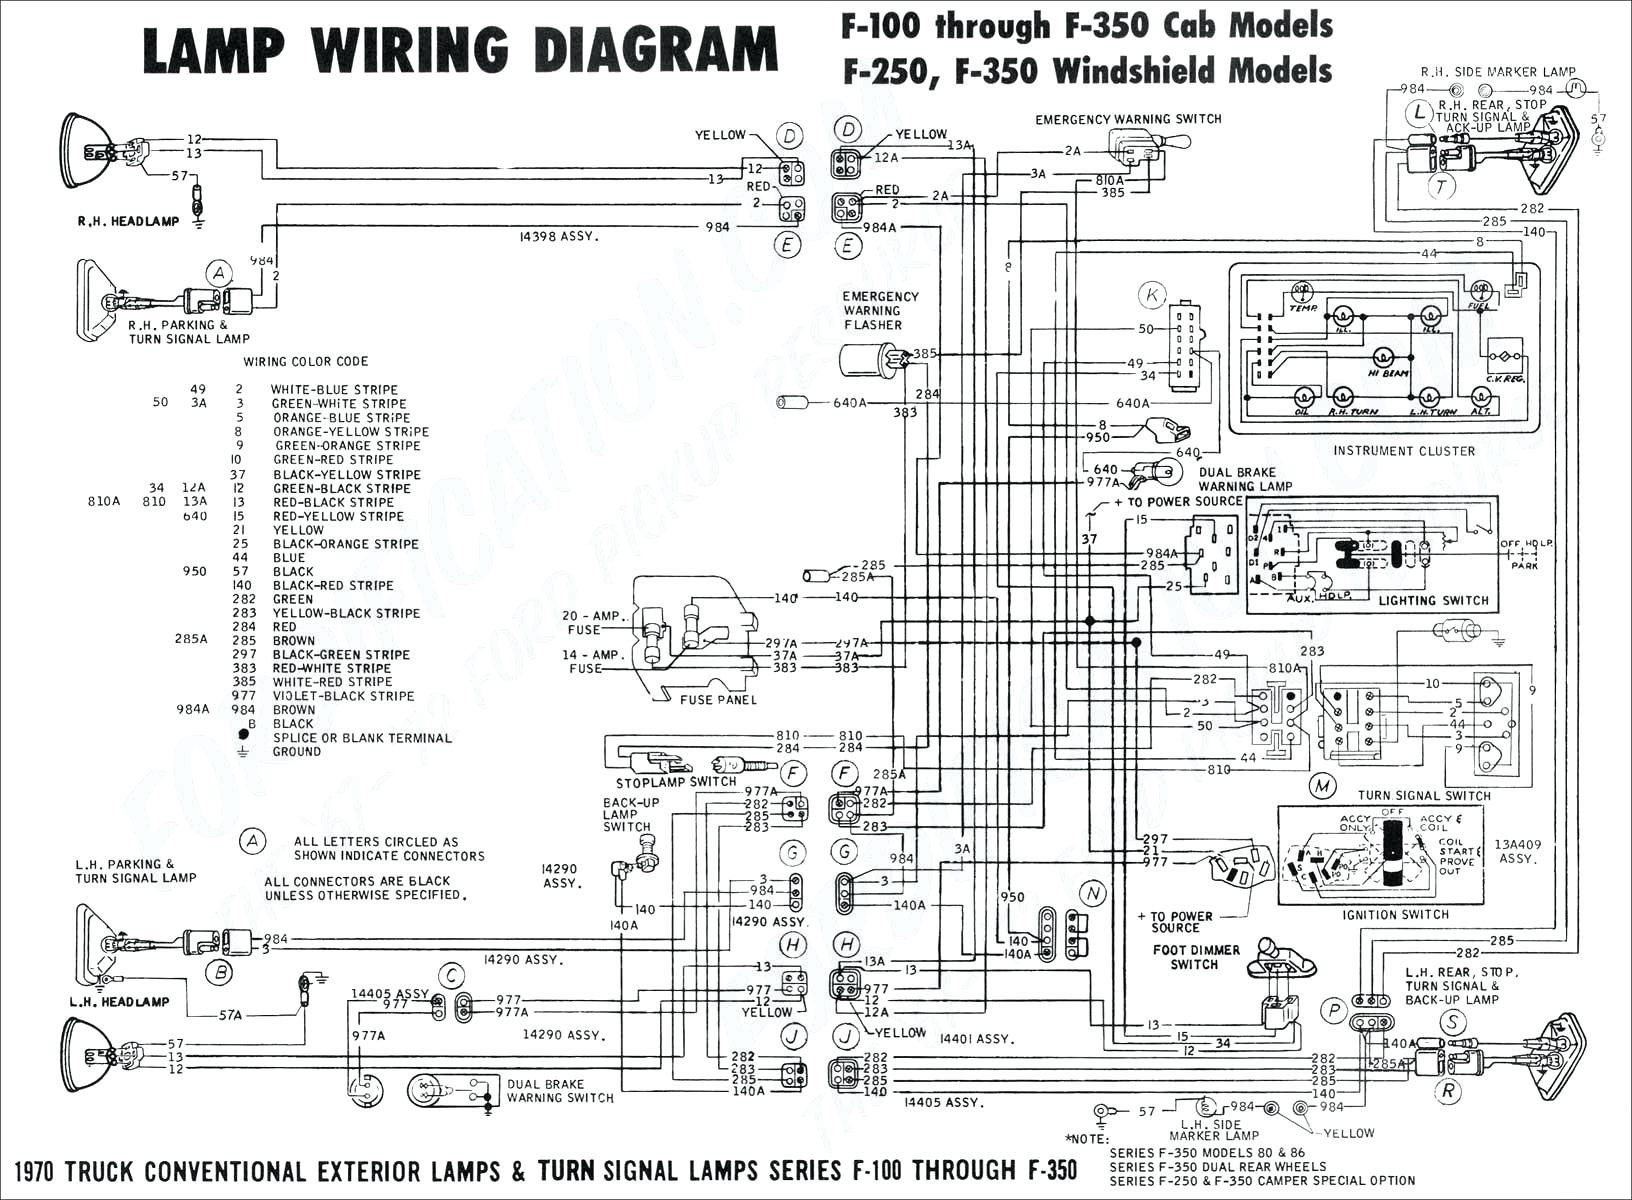 1968 Ford Truck Turn Signal Wiring Diagram Wiring Diagram Report A Report A Maceratadoc It